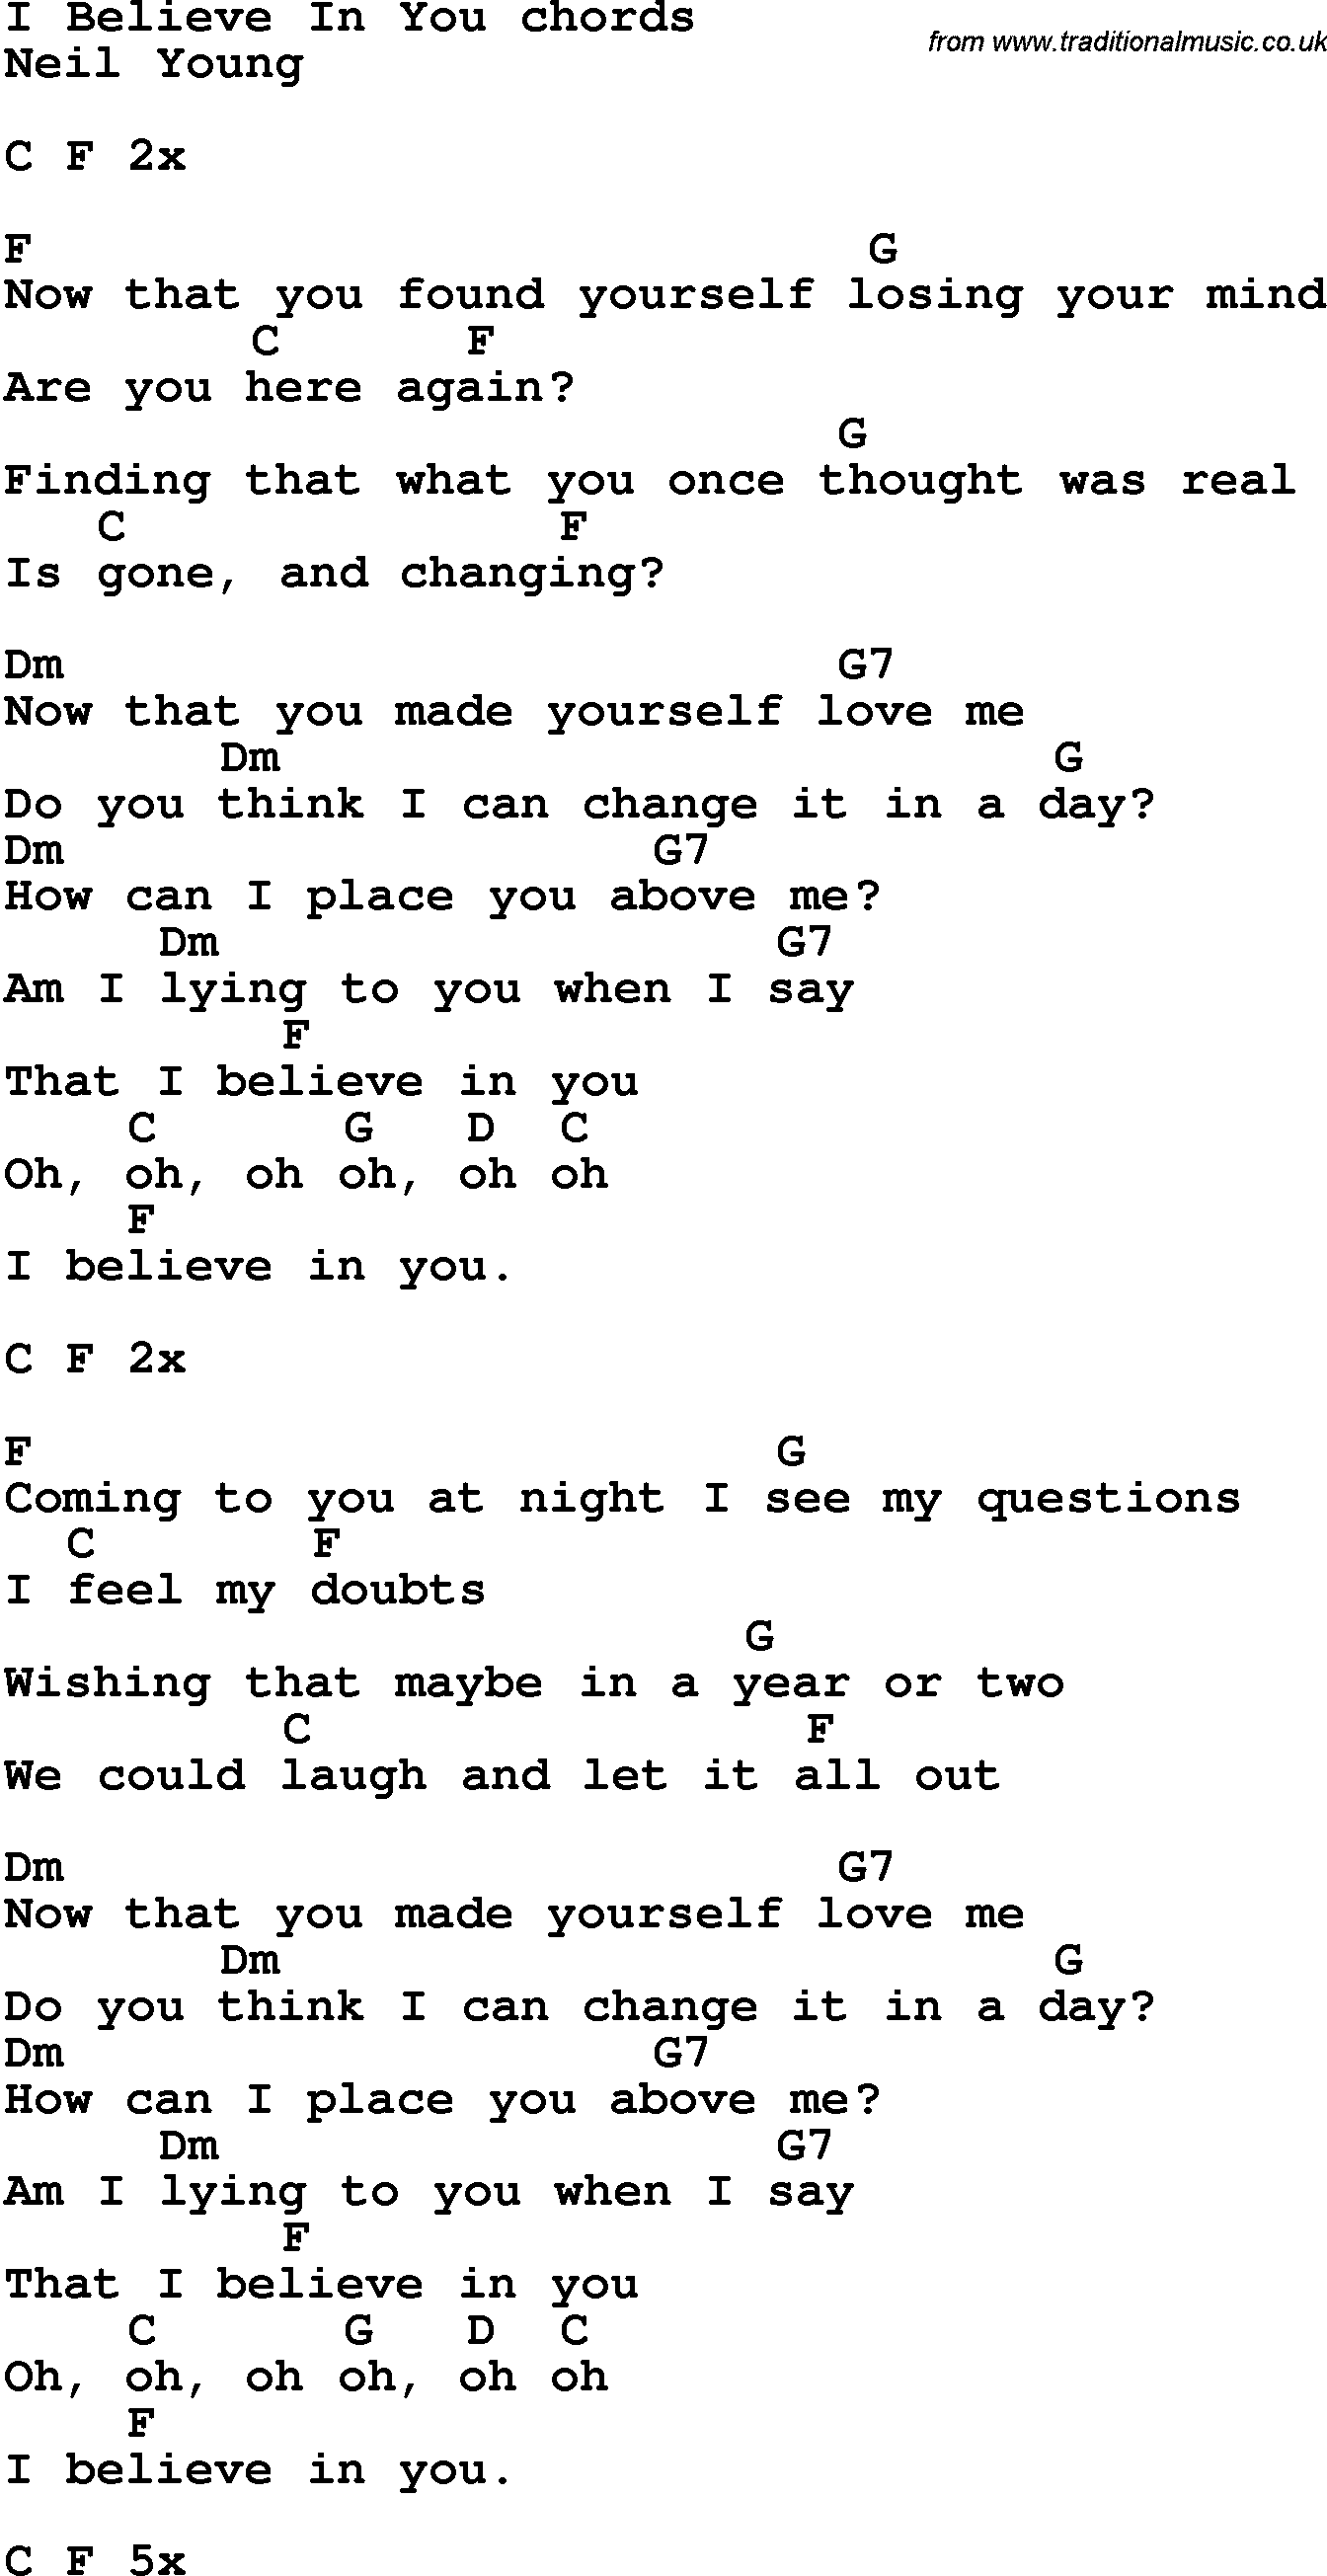 Song lyrics with guitar chords for i believe in you neil young song lyrics with guitar chords for i believe in you neil young hexwebz Images